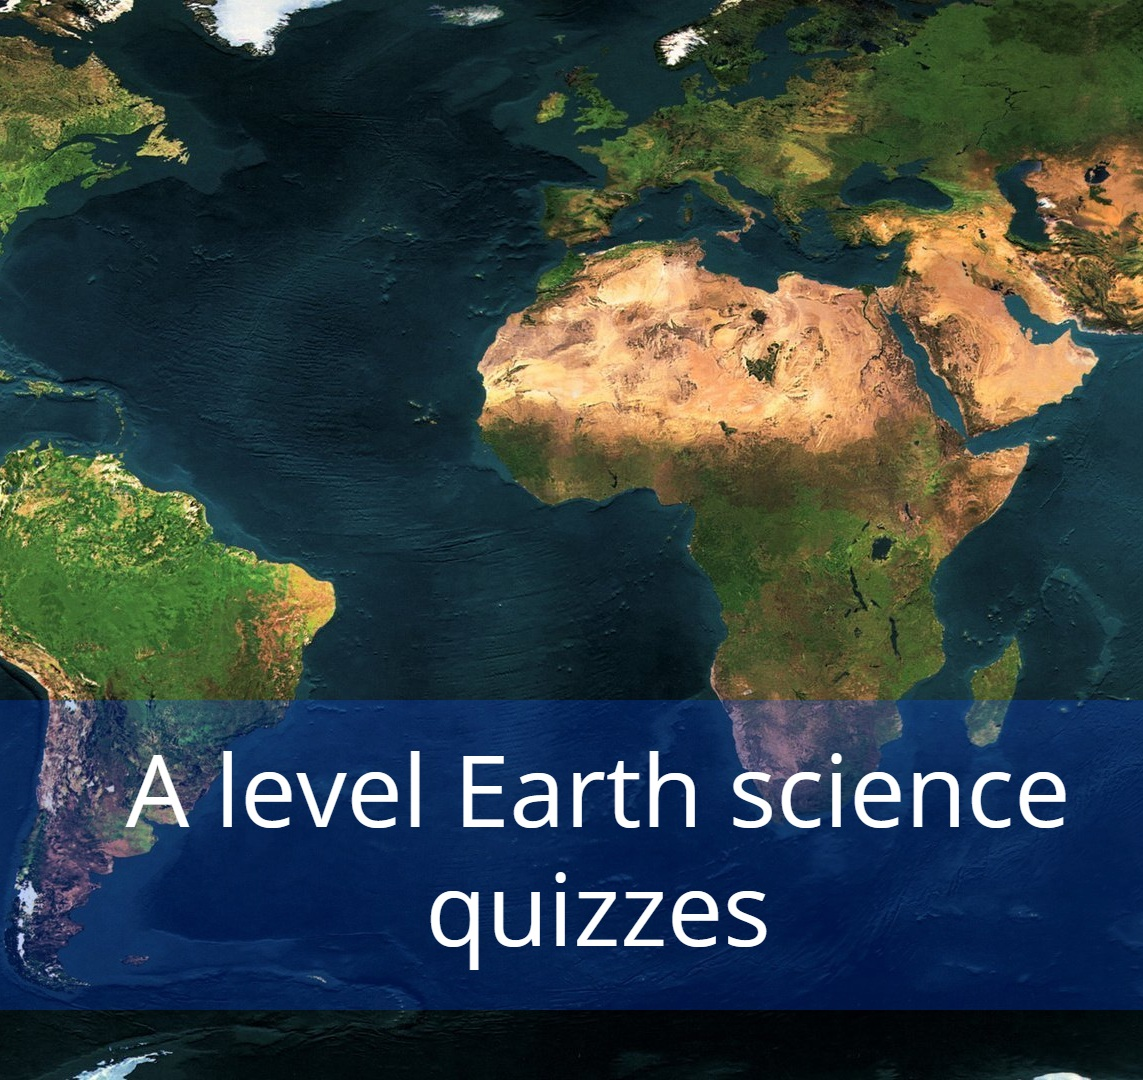 A level Earth science quizzes